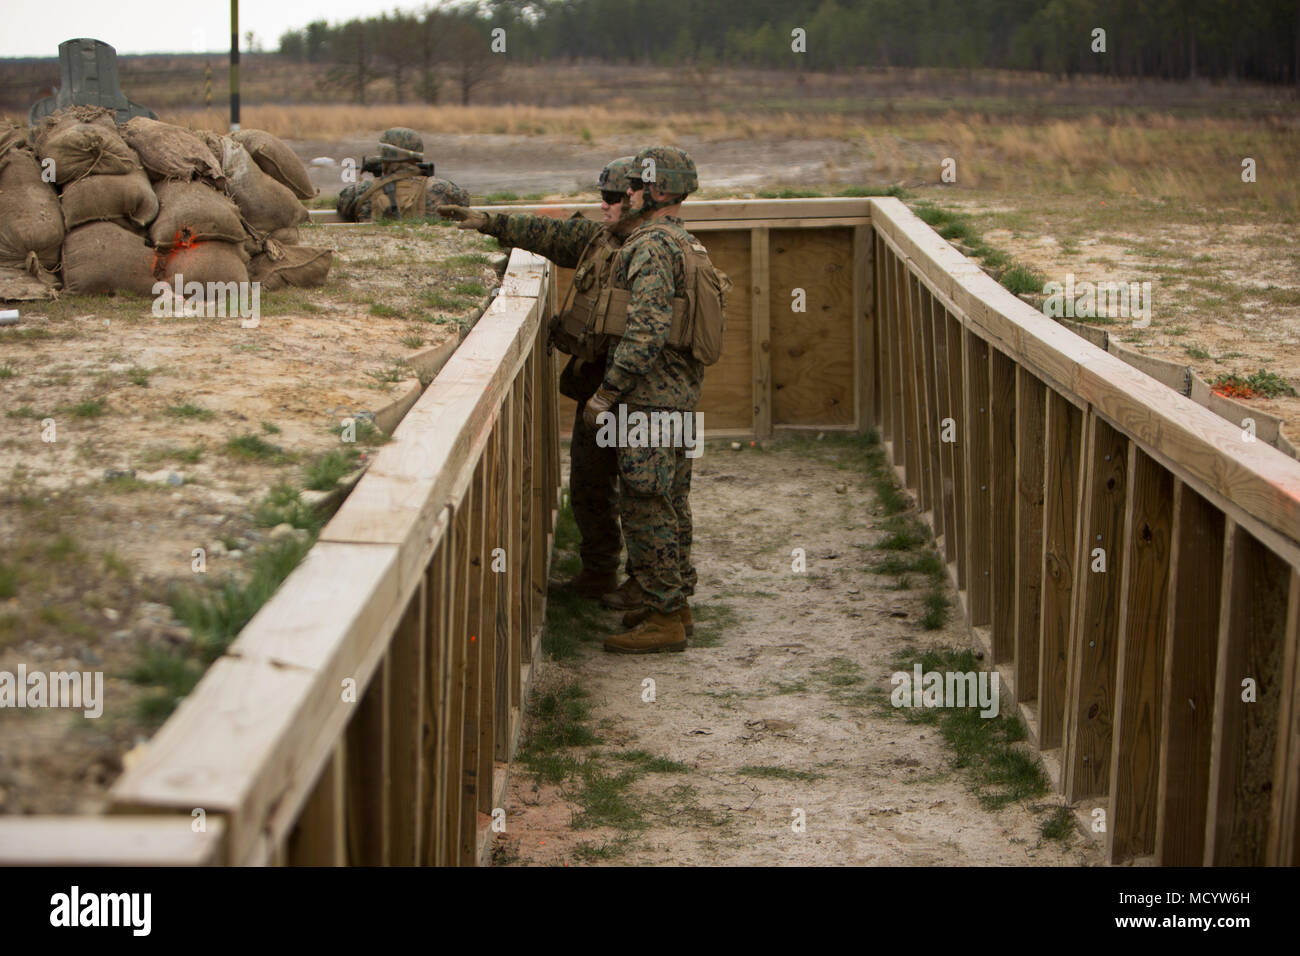 U.S. Marine Corps Maj. Gen. John K. Love, 2nd Marine Division Commanding General, observes Marines with 3rd Battalion, 2nd Marine Regiment, 2nd Marine Division, during a live-fire platoon attack at Range G-29 on Camp Lejeune, N.C., March 7, 2018. 2nd Marine Division provided funding and material for the creation of Range G-29 and tasked Marines with 2nd Combat Engineer Battalion to finalize the production of the range. (U.S. Marine Corps photo by Cpl. Justin X. Toledo). - Stock Image